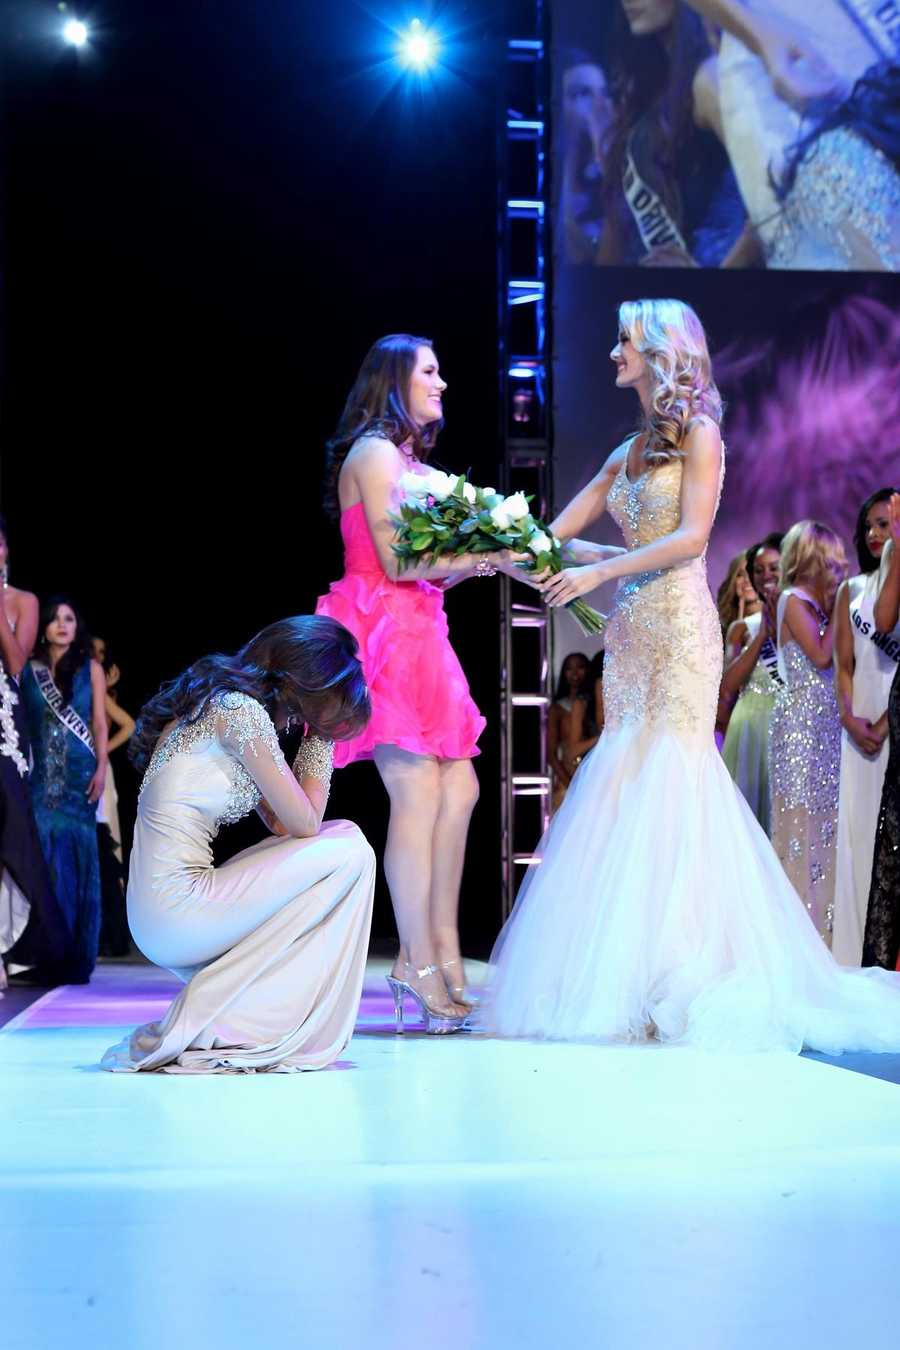 Miss Greater San Diego Mabelynn Capeluj, left, is emotional after the judges announce that she is Miss California USA 2013.